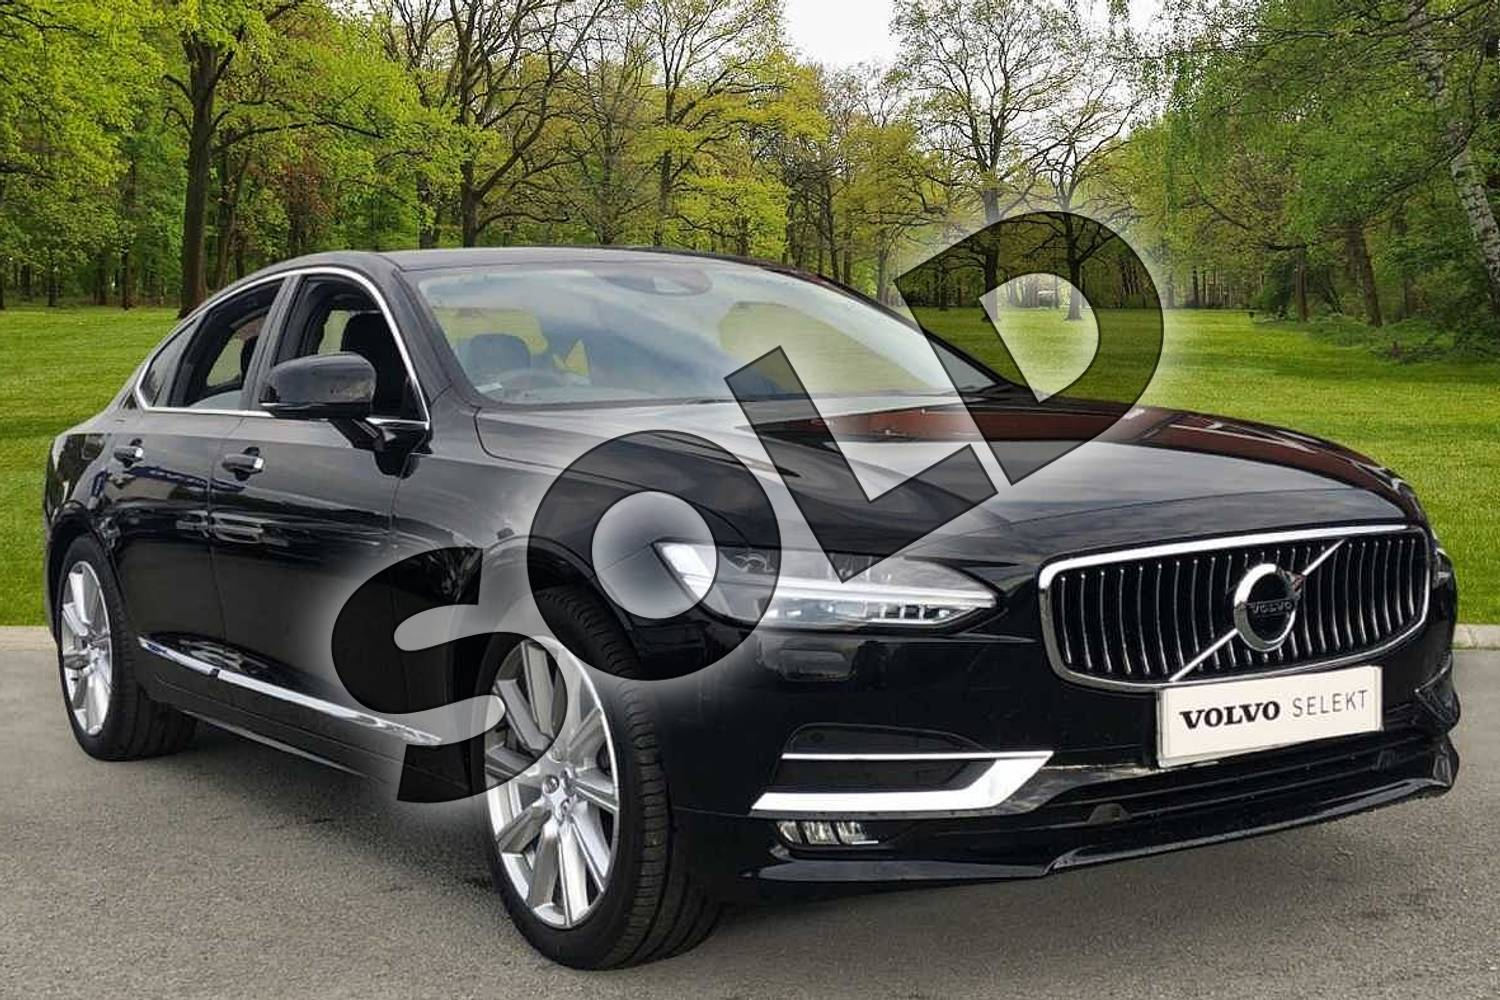 2020 Volvo S90 Diesel Saloon 2.0 D5 Inscription Plus 4dr AWD Geartronic in Onyx Black at Listers Volvo Worcester